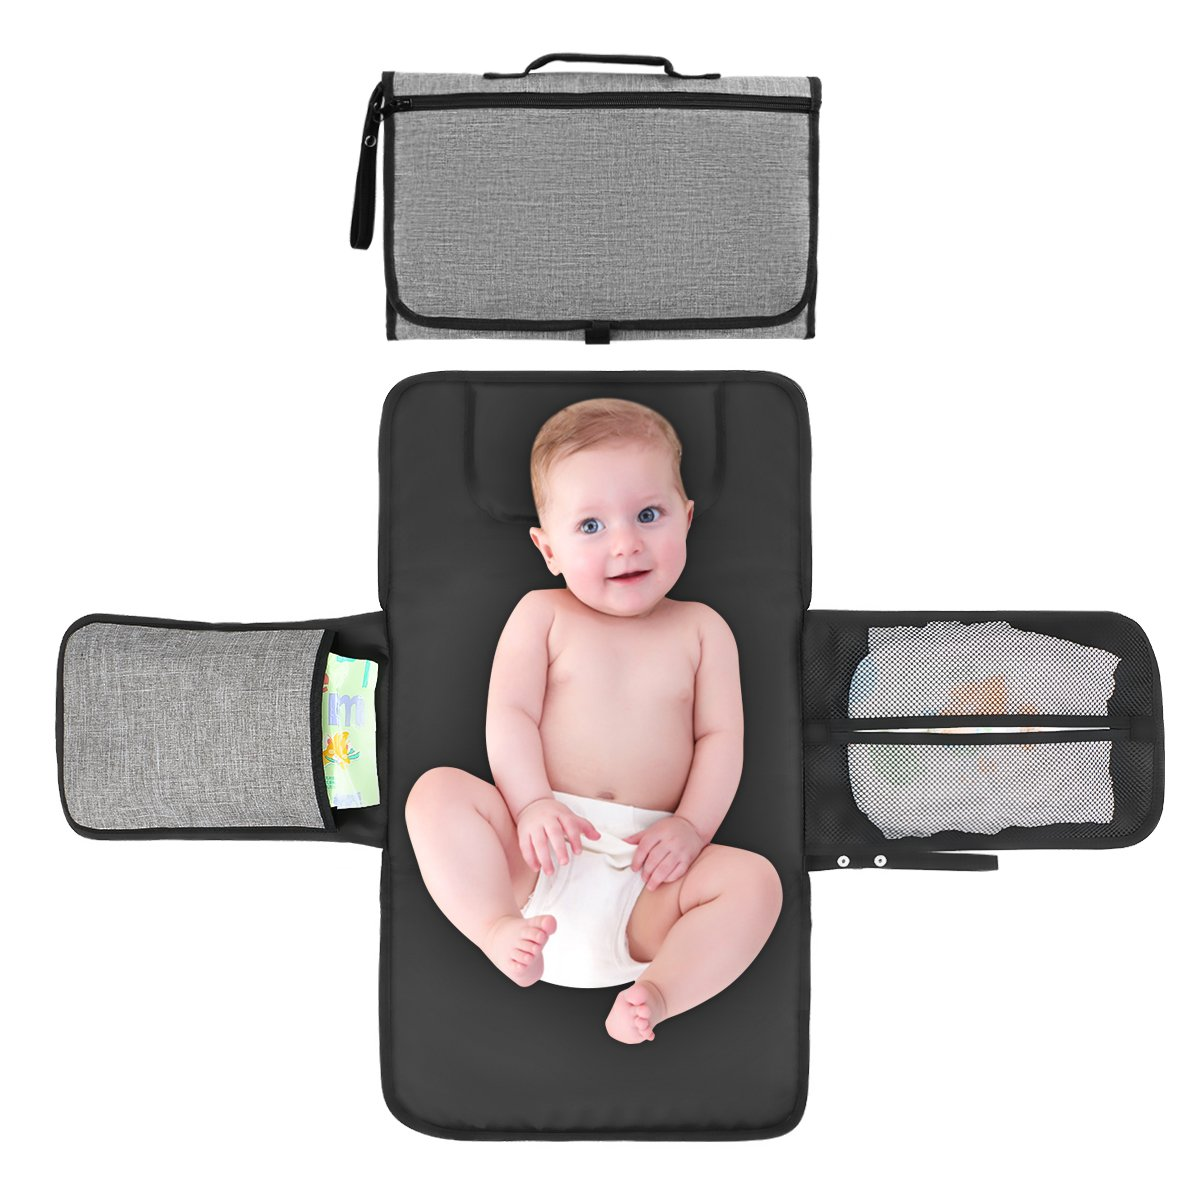 Limerenc Baby Portable Changing Station with Head Cushion and Three Pockets,Waterproof Foldable Portable Diaper Pad Kit,Lightweight Travel Home Diaper Changer Mat for Newborn Baby Infant